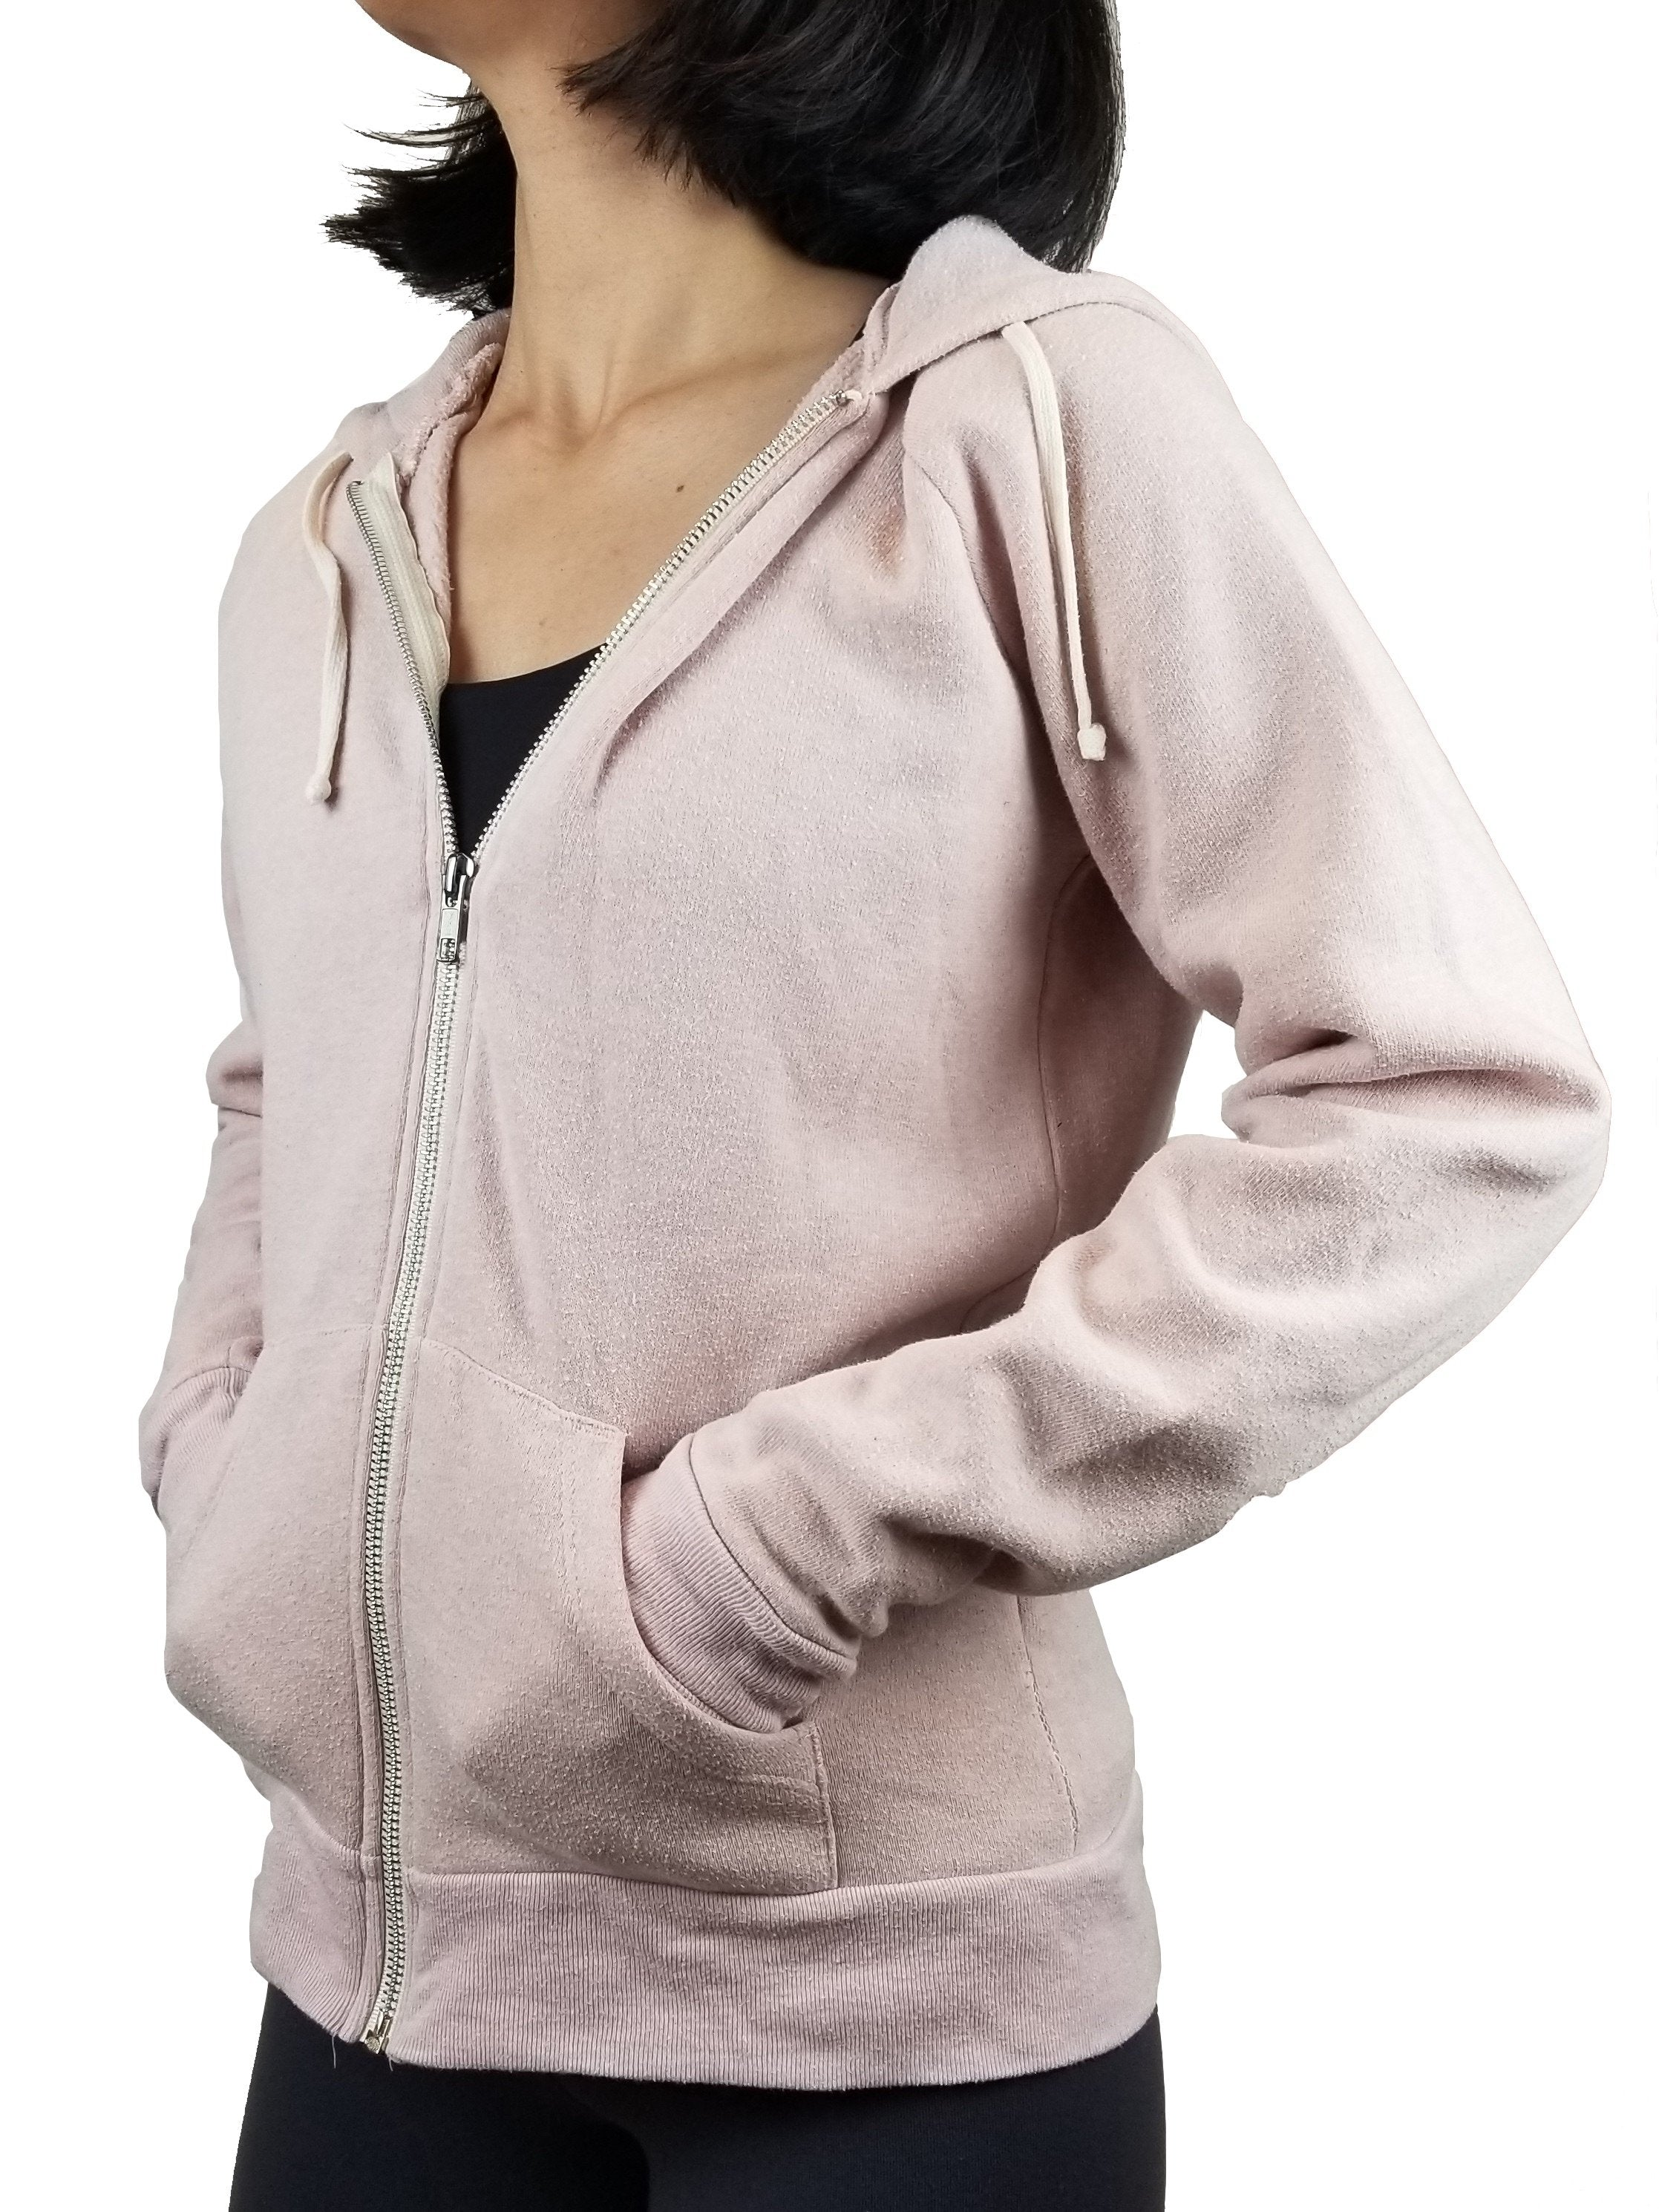 Alternative Women's Zip Hoodie, Warm hoodie, Pink, 59% Polyester, 46% cotton, 4% rayon., women's Jackets & Coats, women's Pink Jackets & Coats, Alternative women's Jackets & Coats, Jacket, hoddie, sweater